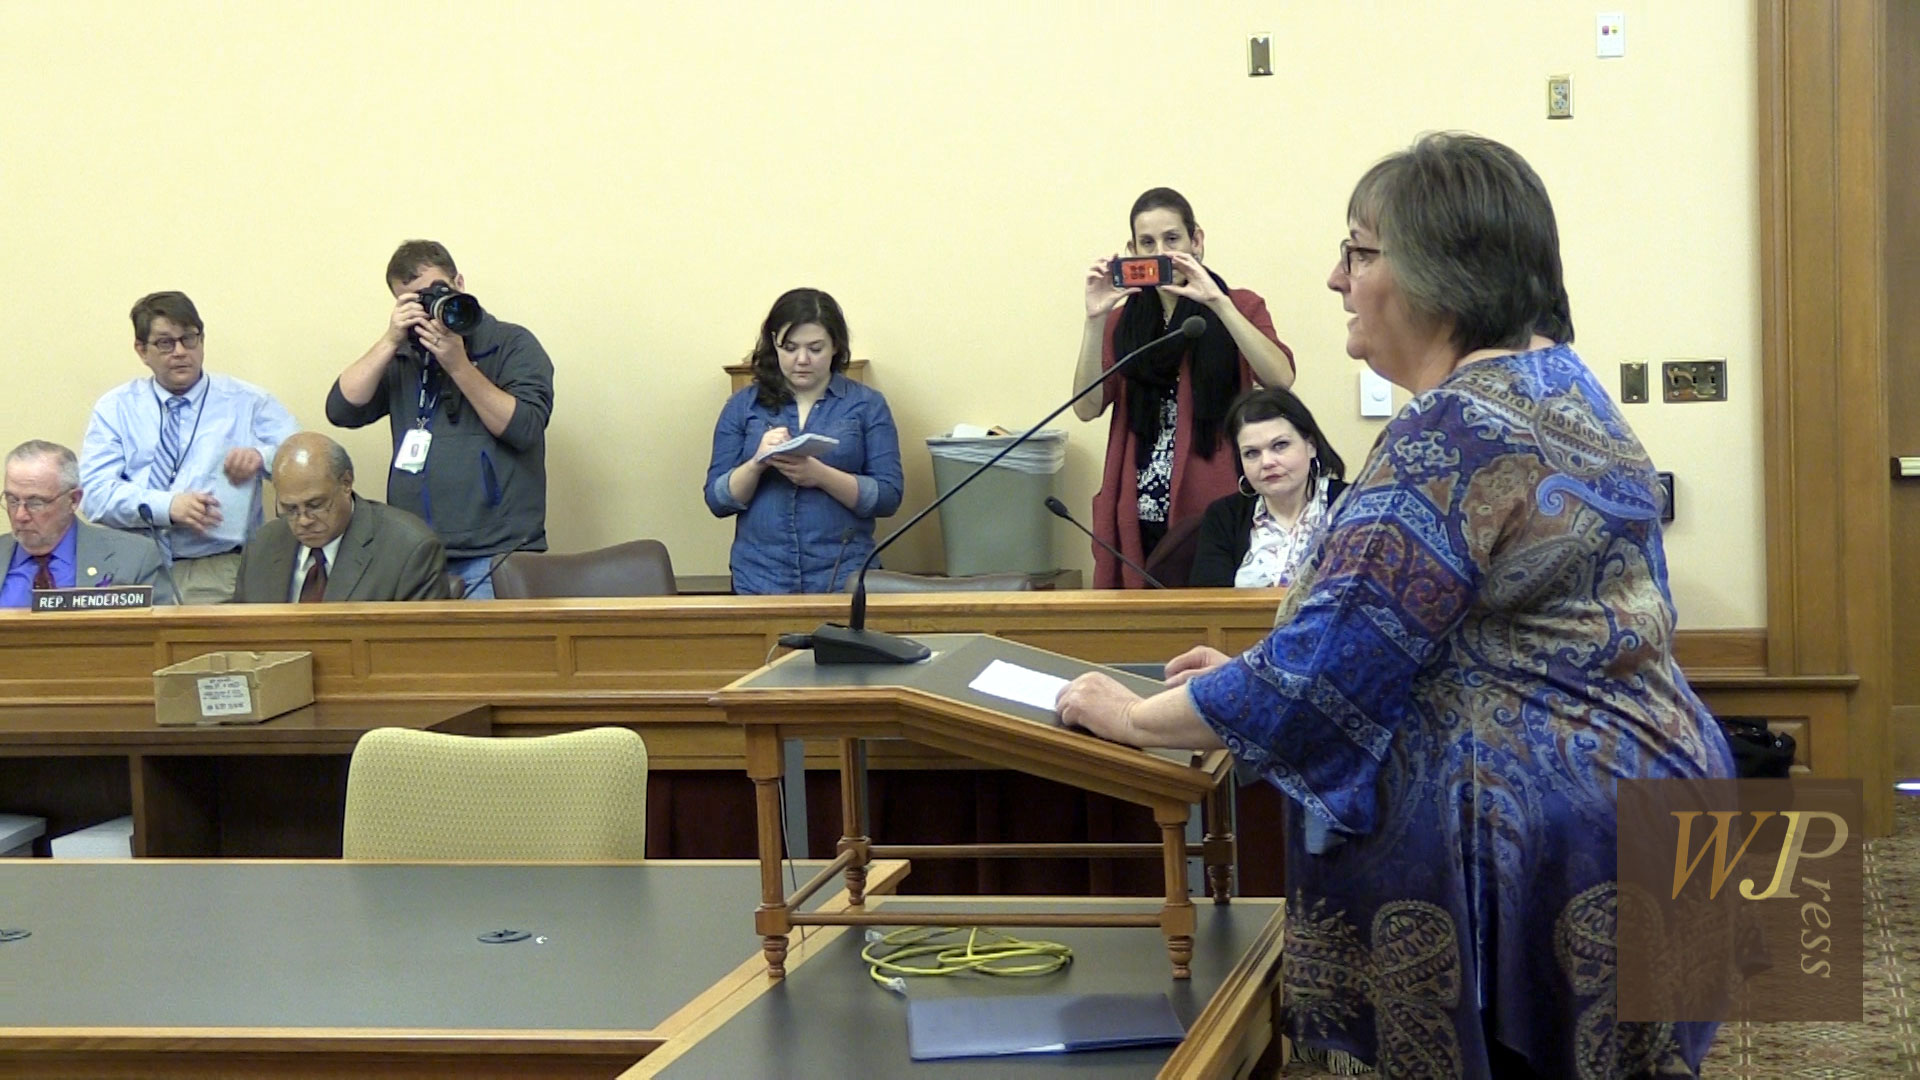 hb medicaid expansion bill nd day hearing features suzan emmons self employed housekeeper in the coverage gap gives a face to the